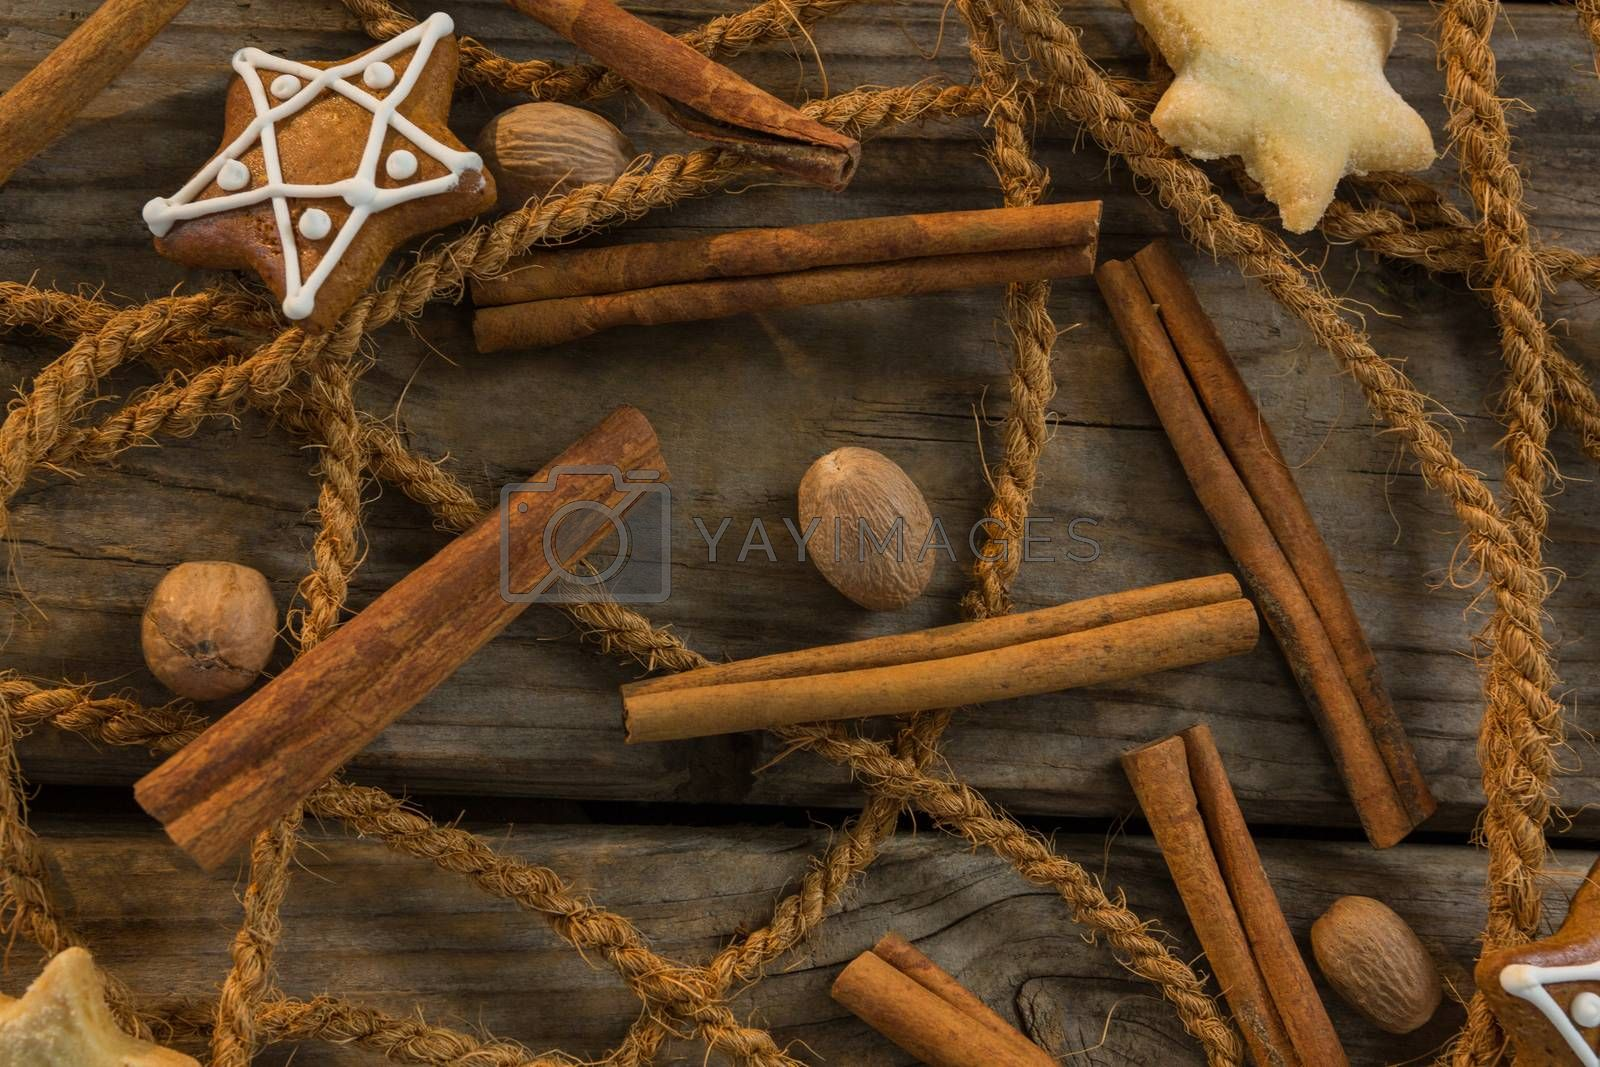 Overhead view of rope with star shape cookies and cinnamon sticks by walnuts by Wavebreakmedia